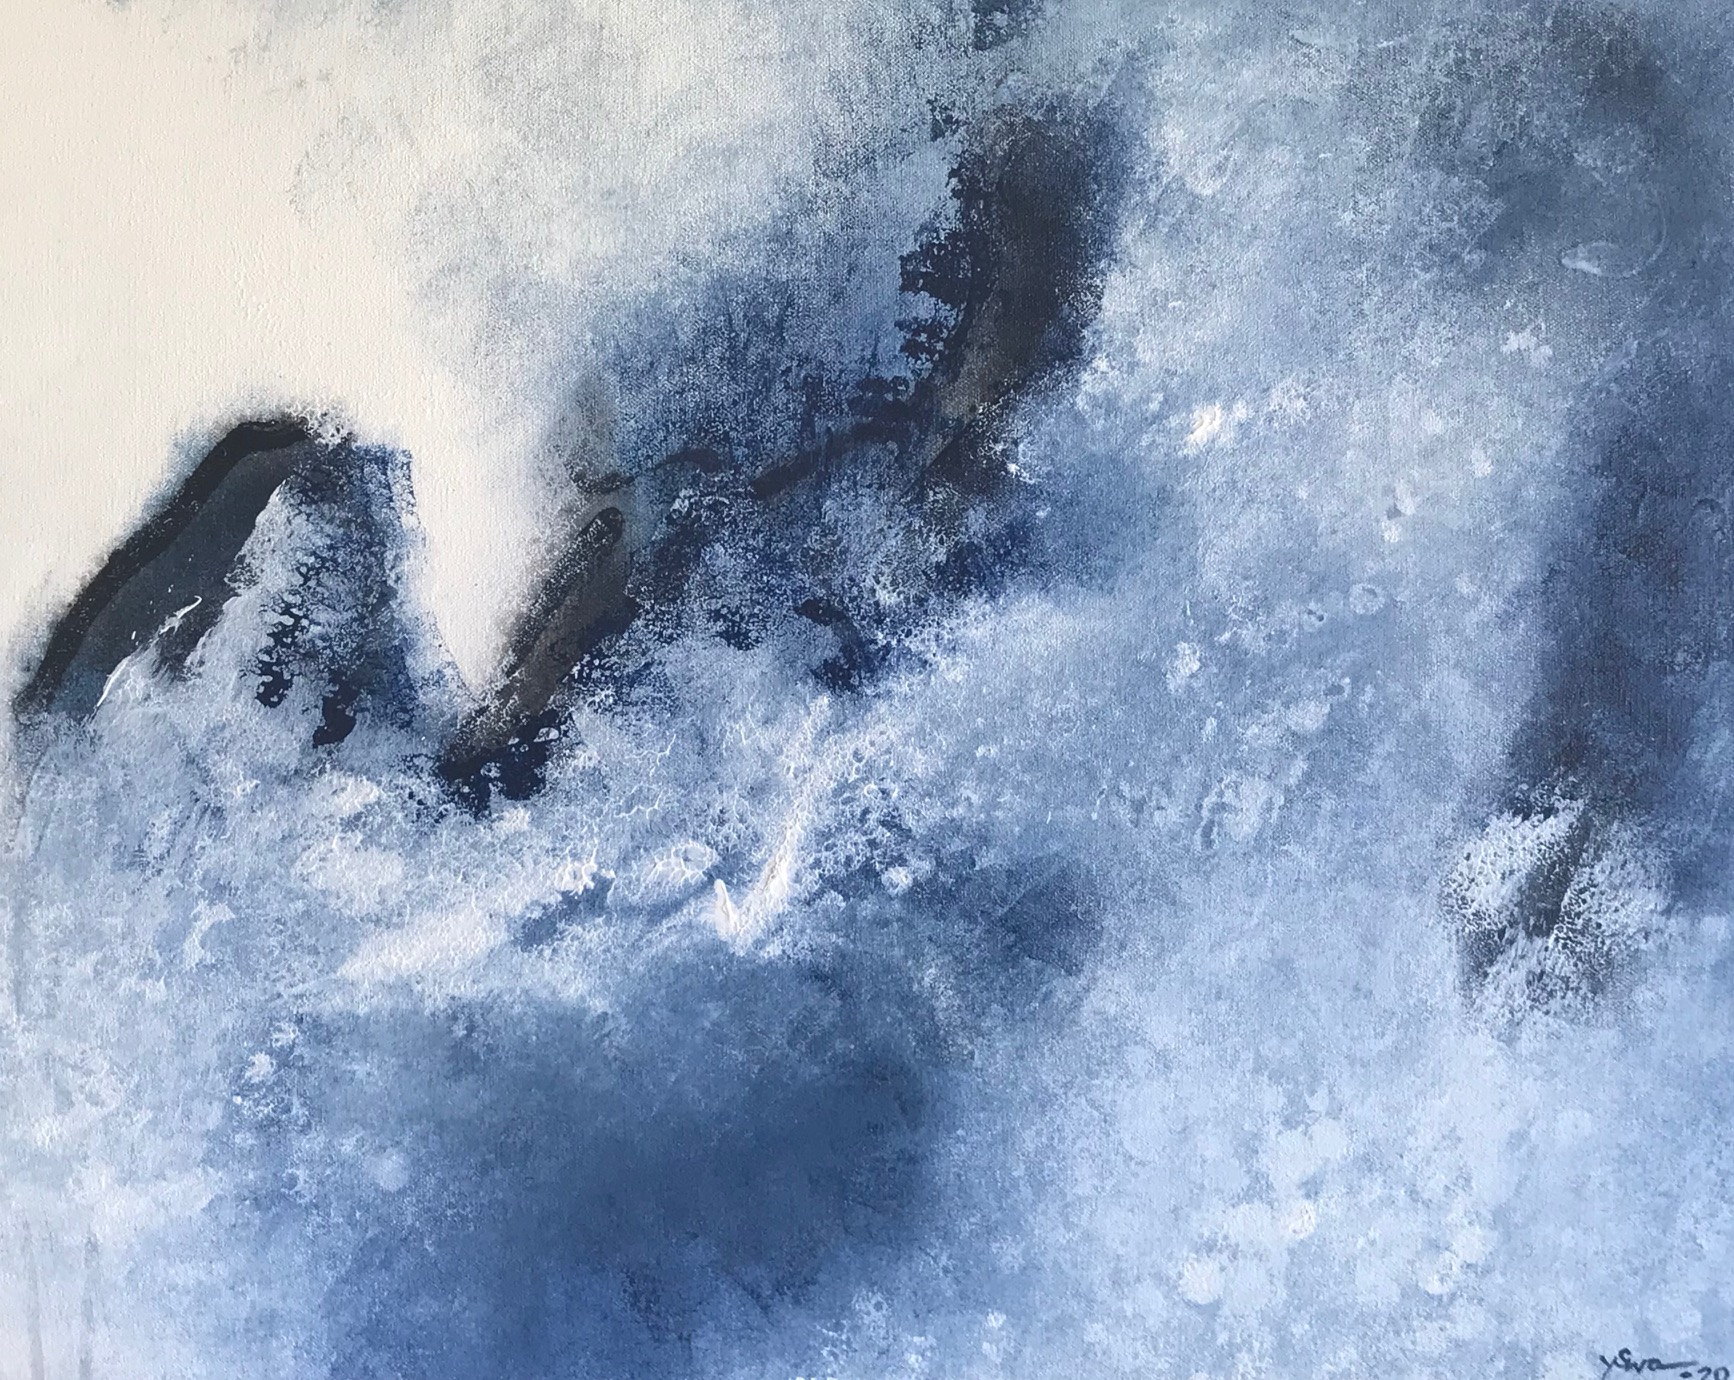 Yvette Swan, Sounds Of Night, H41xw51cm, Synthetic Polymer On Canvas, $900